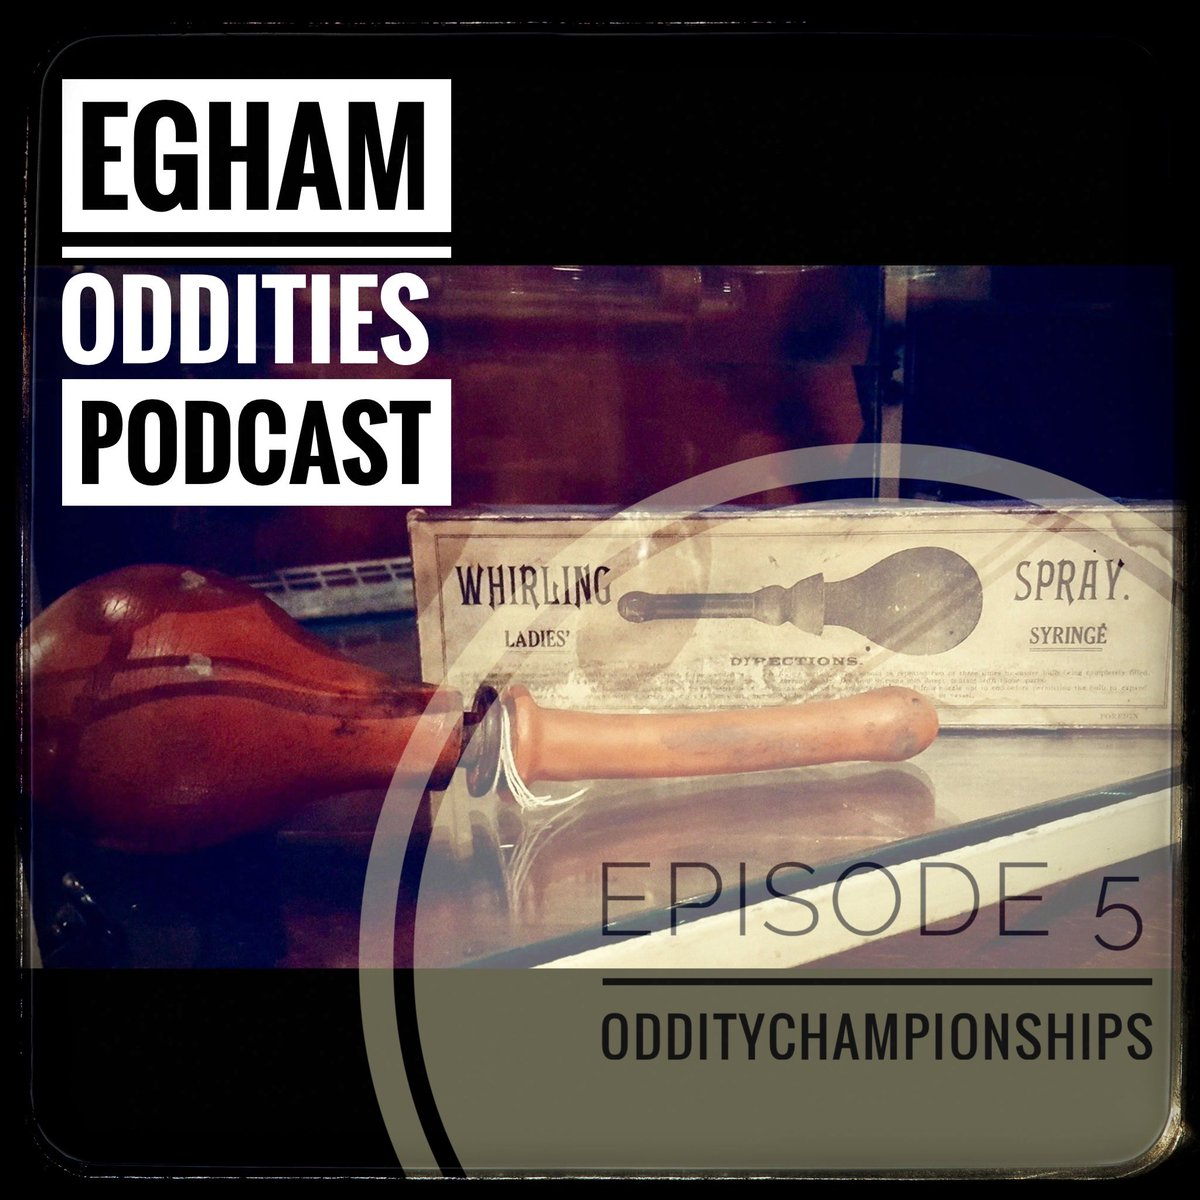 We released Episode 5 of Egham Oddities yesterday evening and it's all about our #NationalOddityChampiinships2020 with @OldOpTheatre   Listen, subscribe, rate and review please https://pod.link/1491610134  #podernfamily #podcasts #podcasting  #PodcastRecommendationspic.twitter.com/jfNDa6hFaY